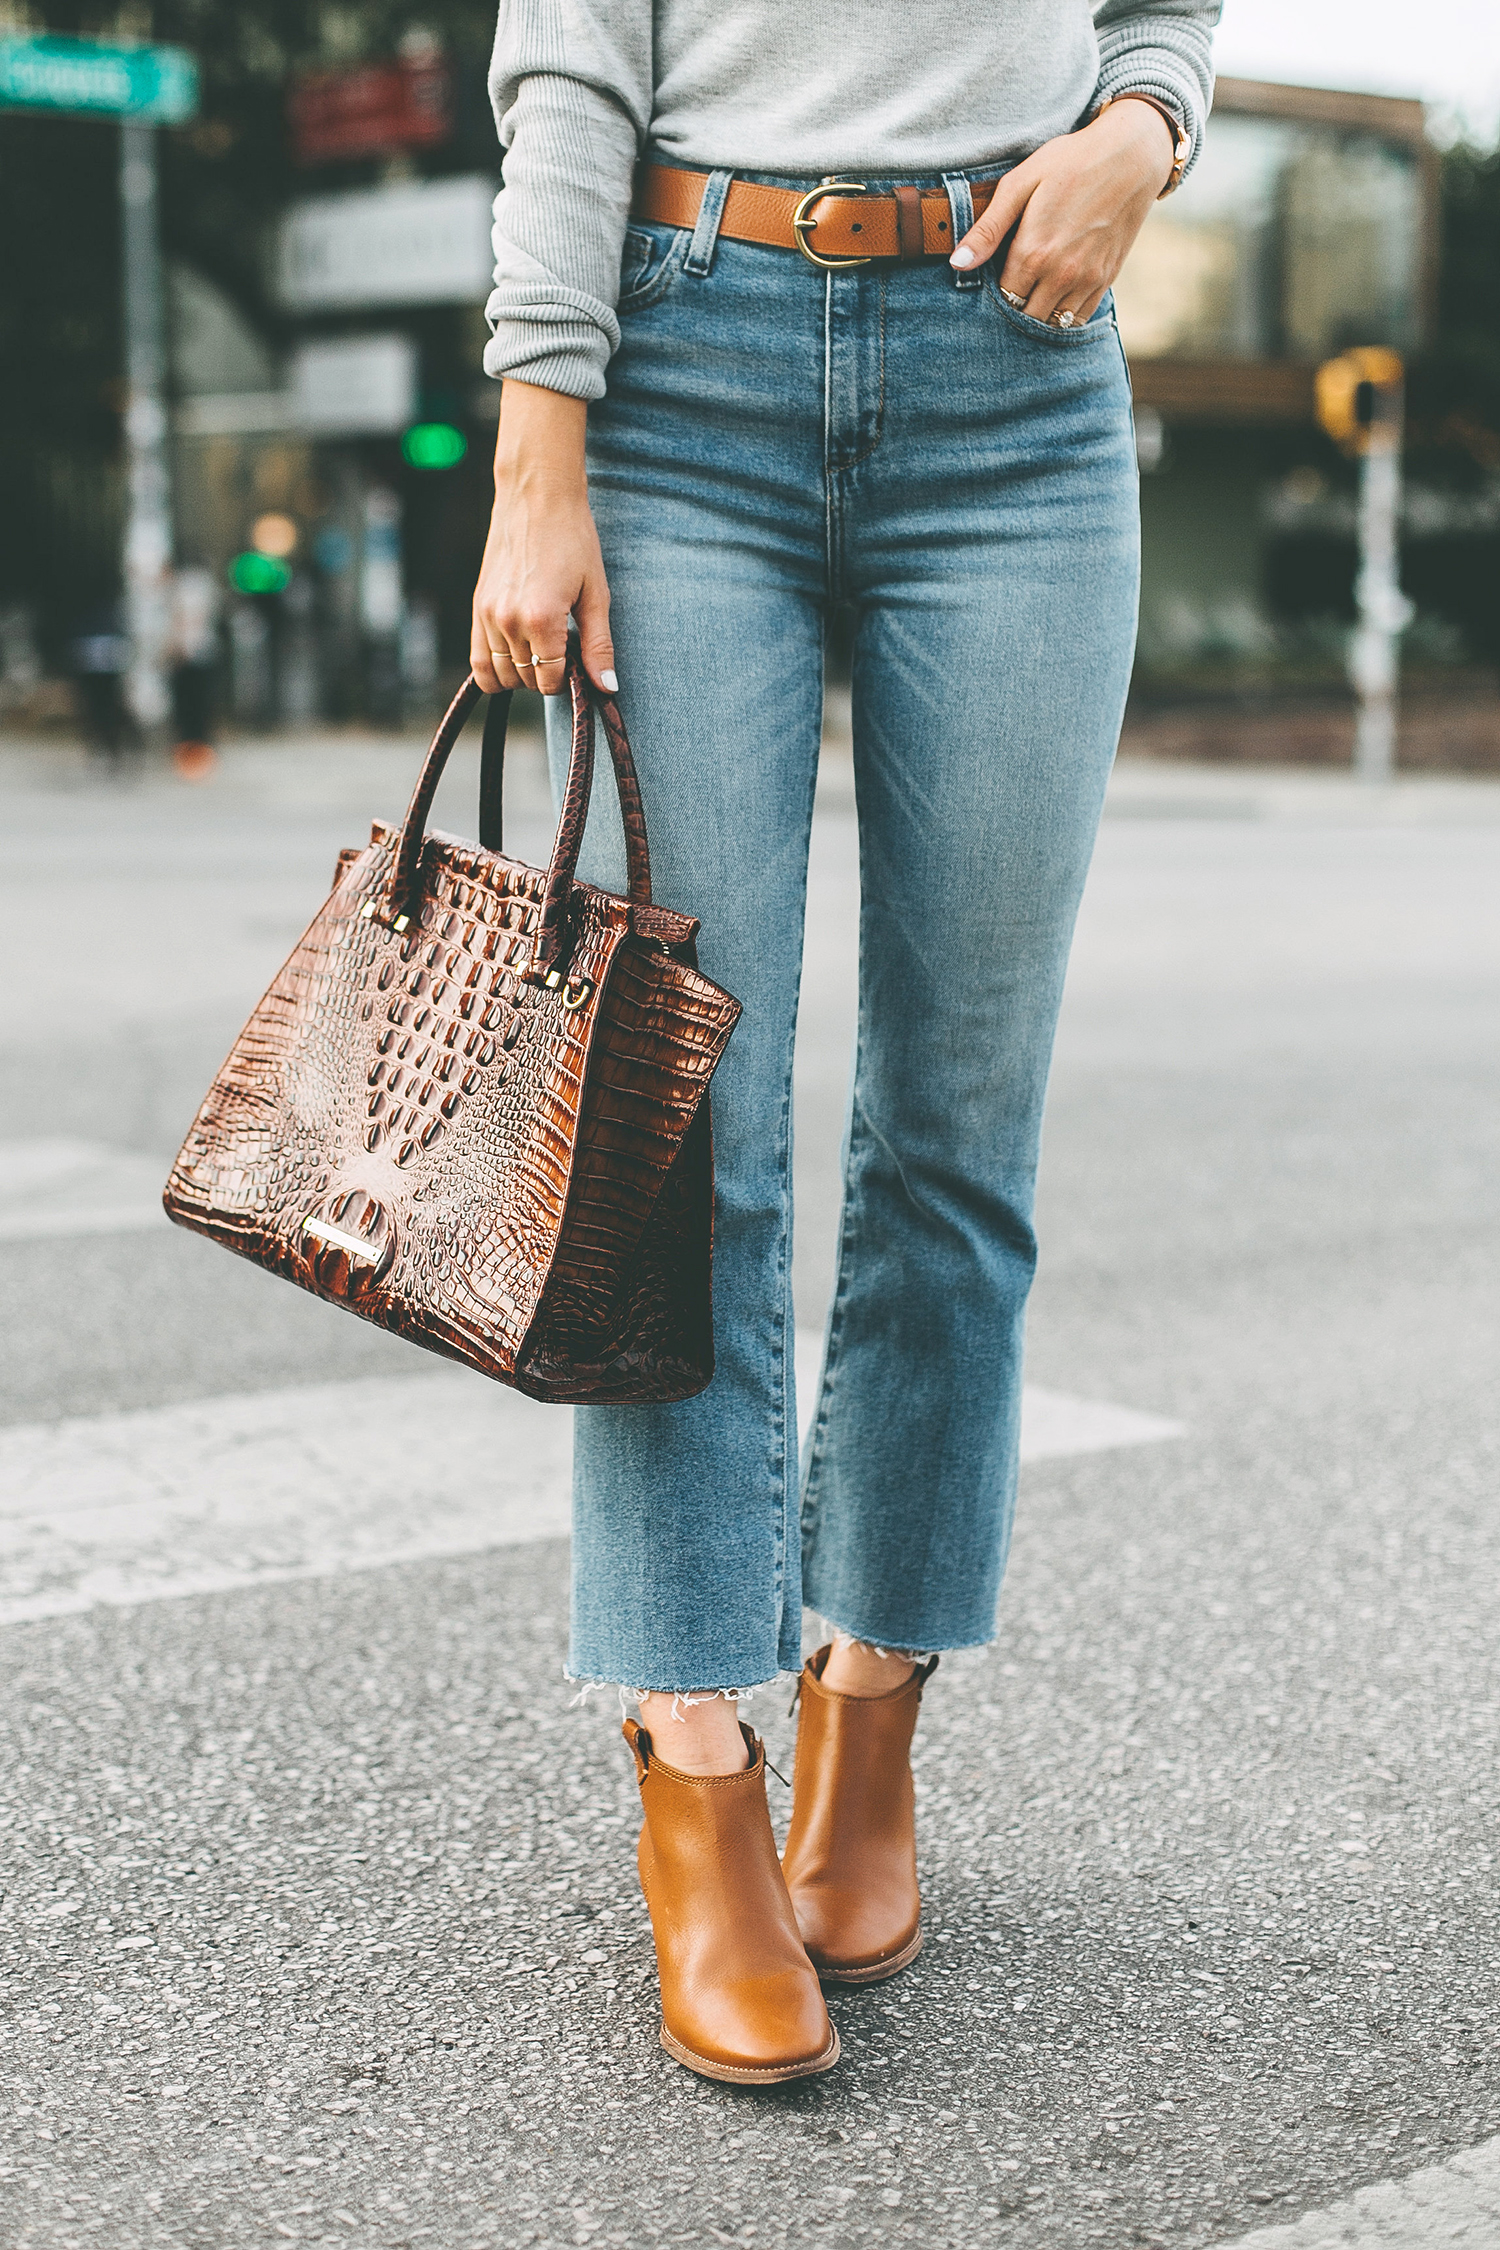 livvyland-blog-olivia-watson-south-congress-avenue-austin-texas-fashion-life-style-blogger-bdg-high-waist-crop-flare-jeans-4